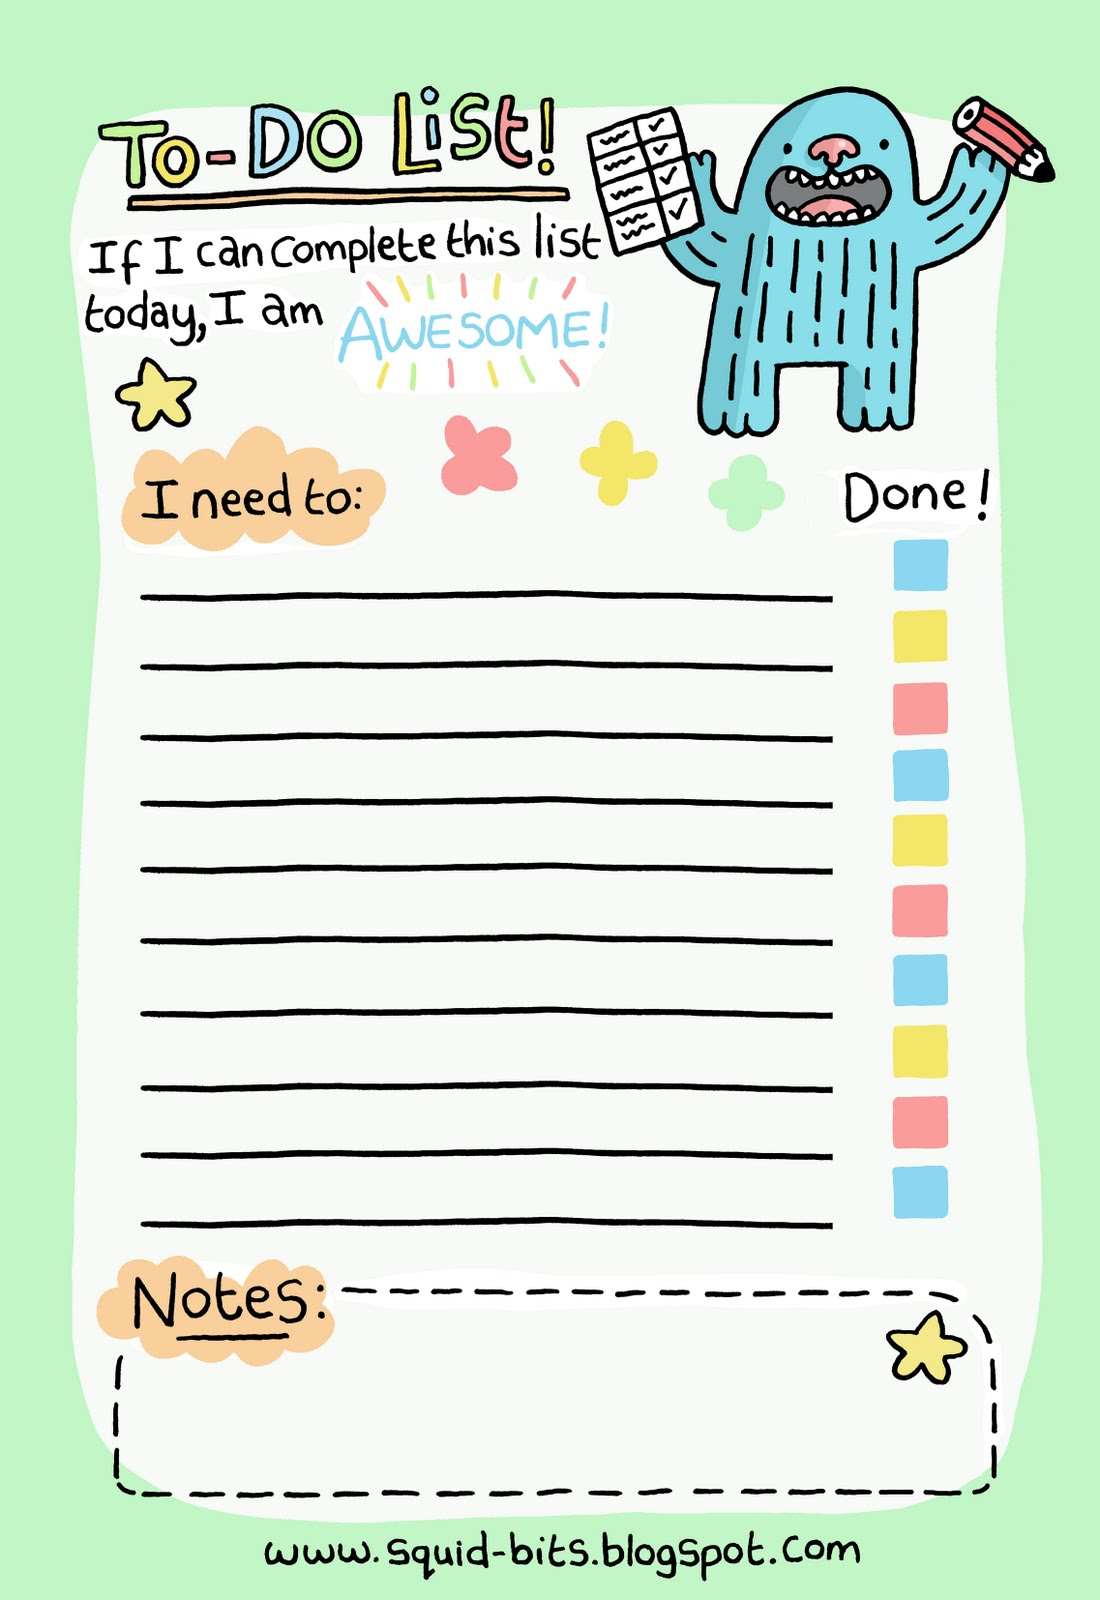 Stupendous image with to do list printable cute